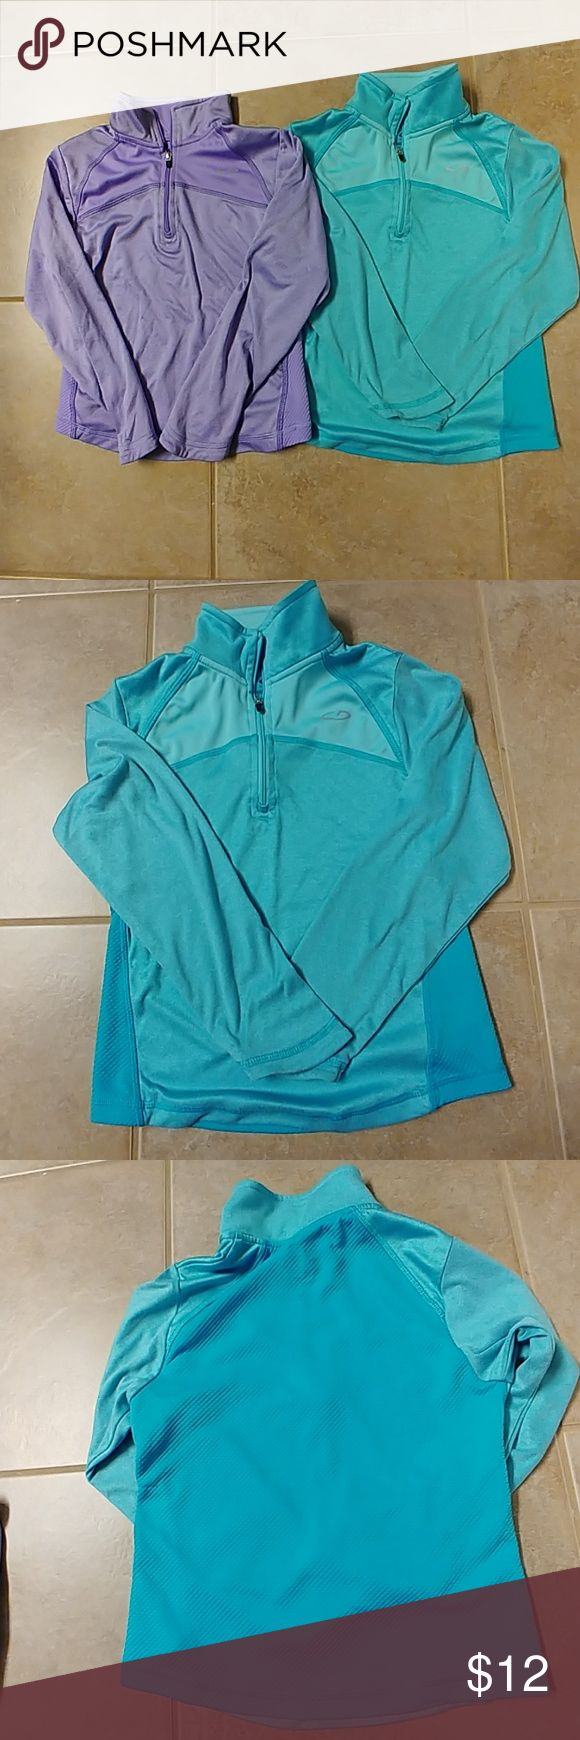 Two Girls' Activewear Tops Great Used Condition. Slight signs of wear from normal use. There are faint snags on the back of both shirts(please see photos). Nothing too noticeable. C9 Quarter Zip Activewear Tops. One is blue and the other is purple. Size Small (6-6x) C9 Shirts & Tops